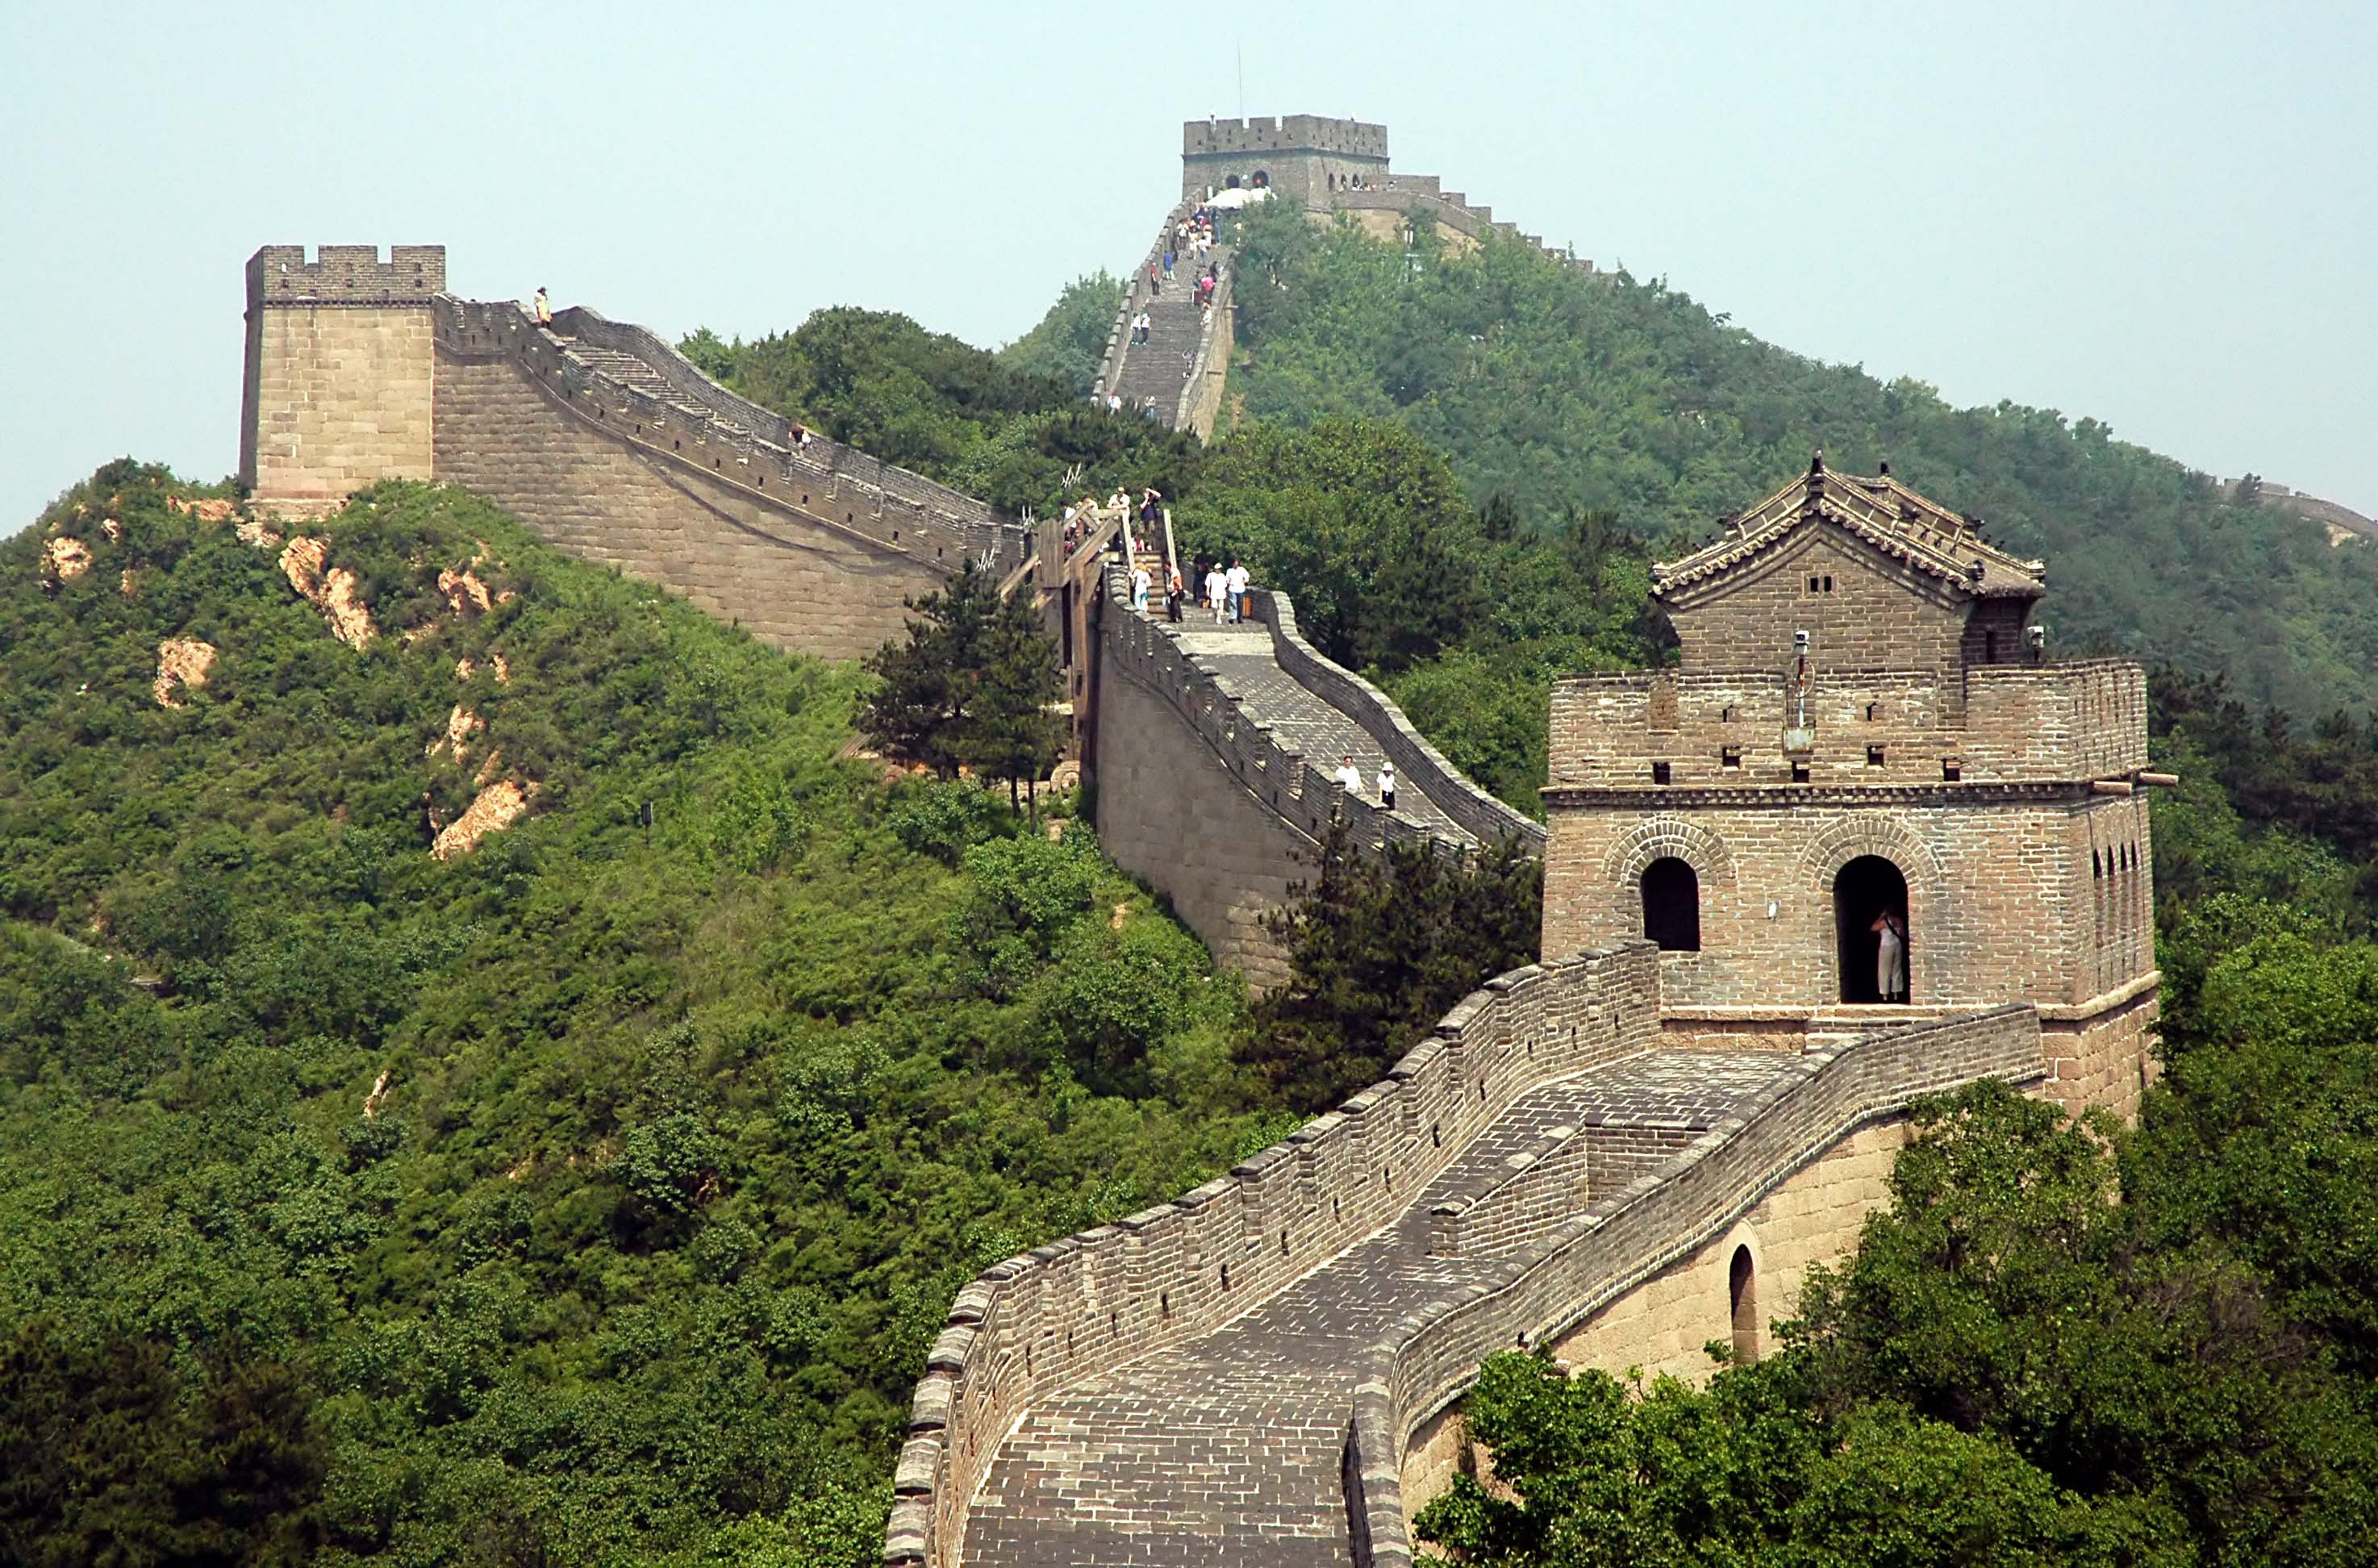 http://www.full-stop.net/wp-content/uploads/2012/05/Great-wall-of-china.jpeg